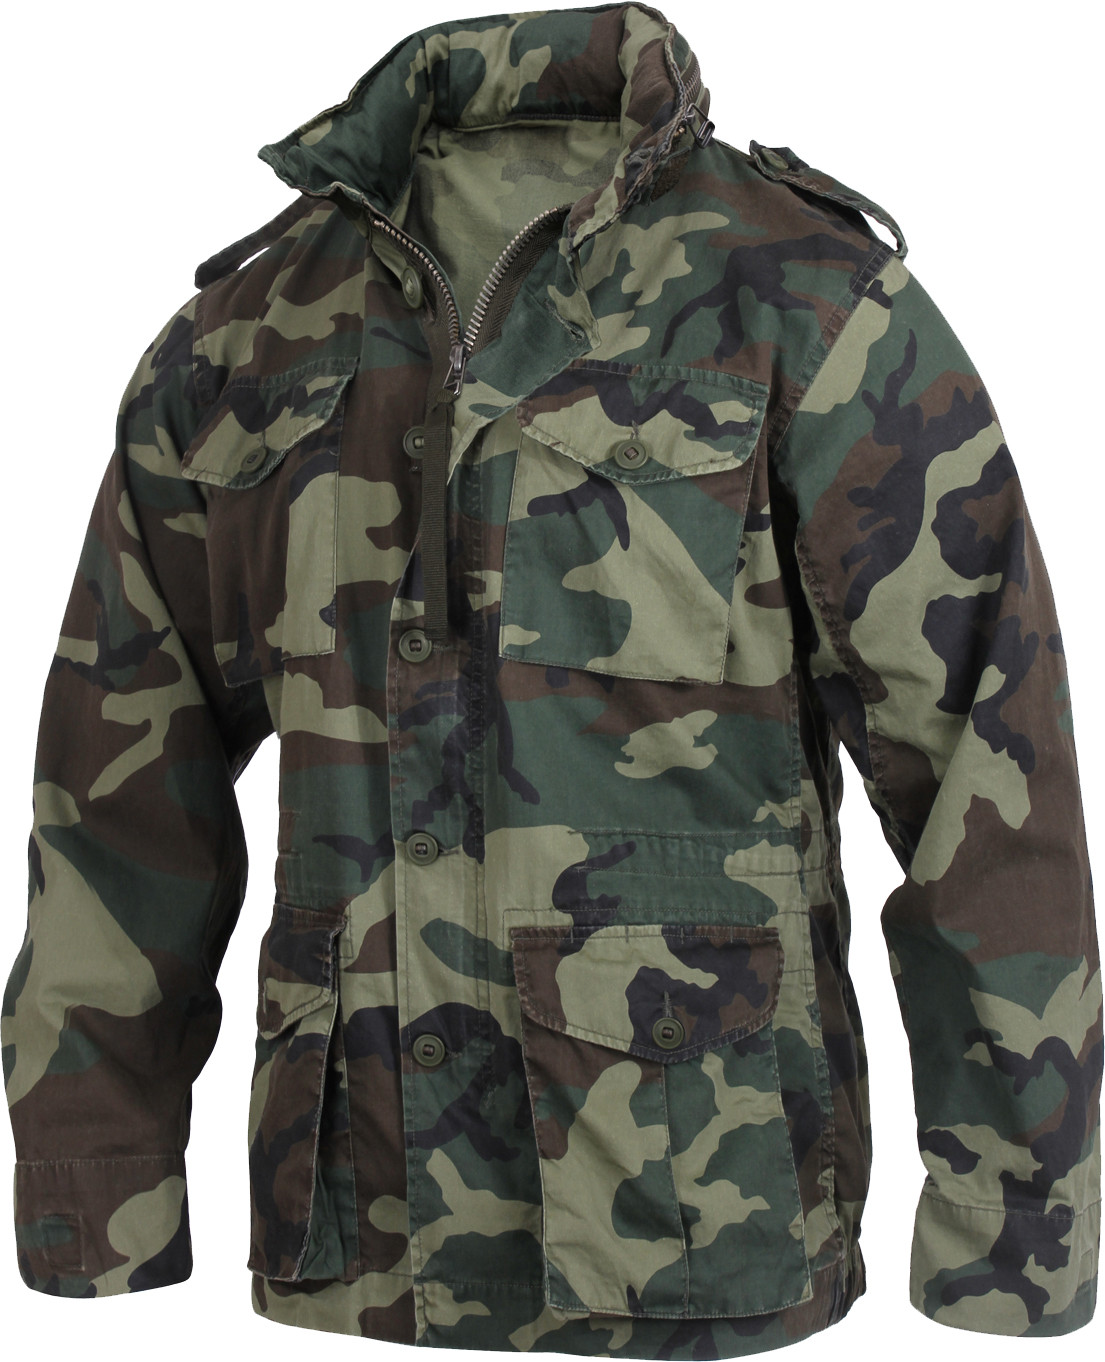 Woodland Camouflage Vintage Military Tactical Lightweight M-65 Field Jacket e88cf994cd8